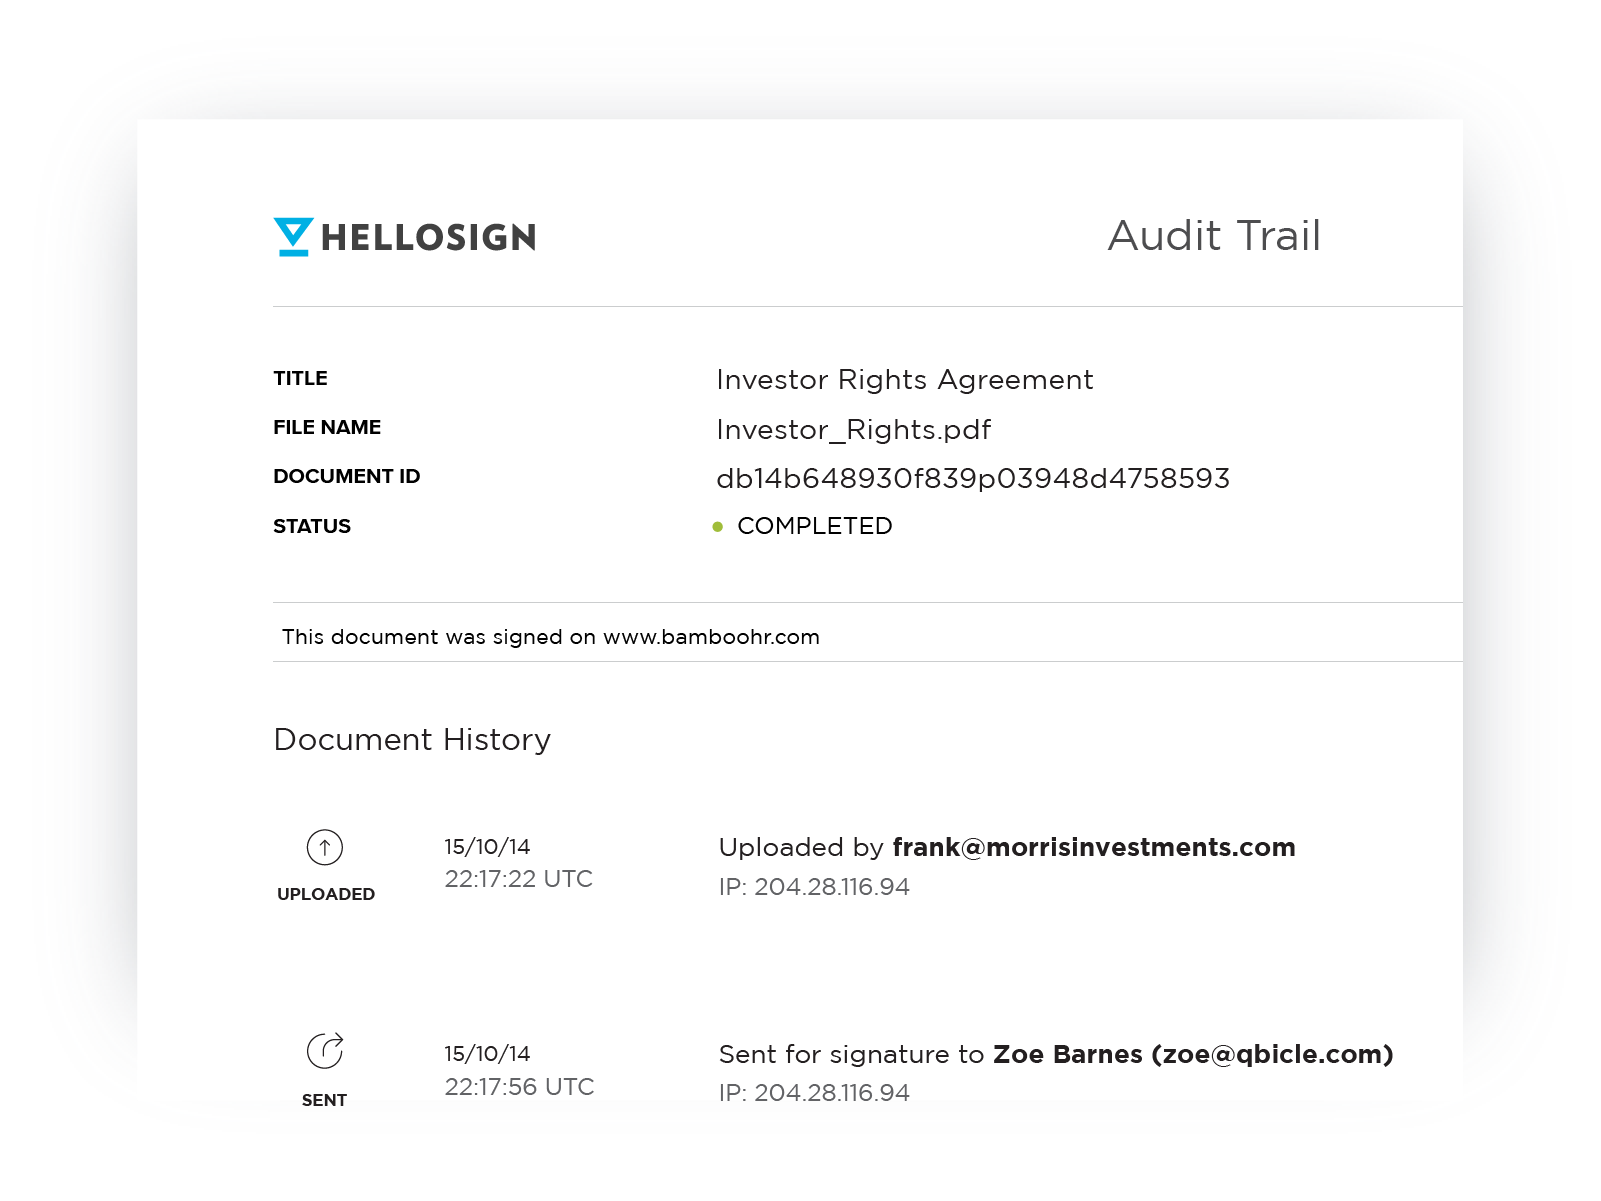 See an audit trail